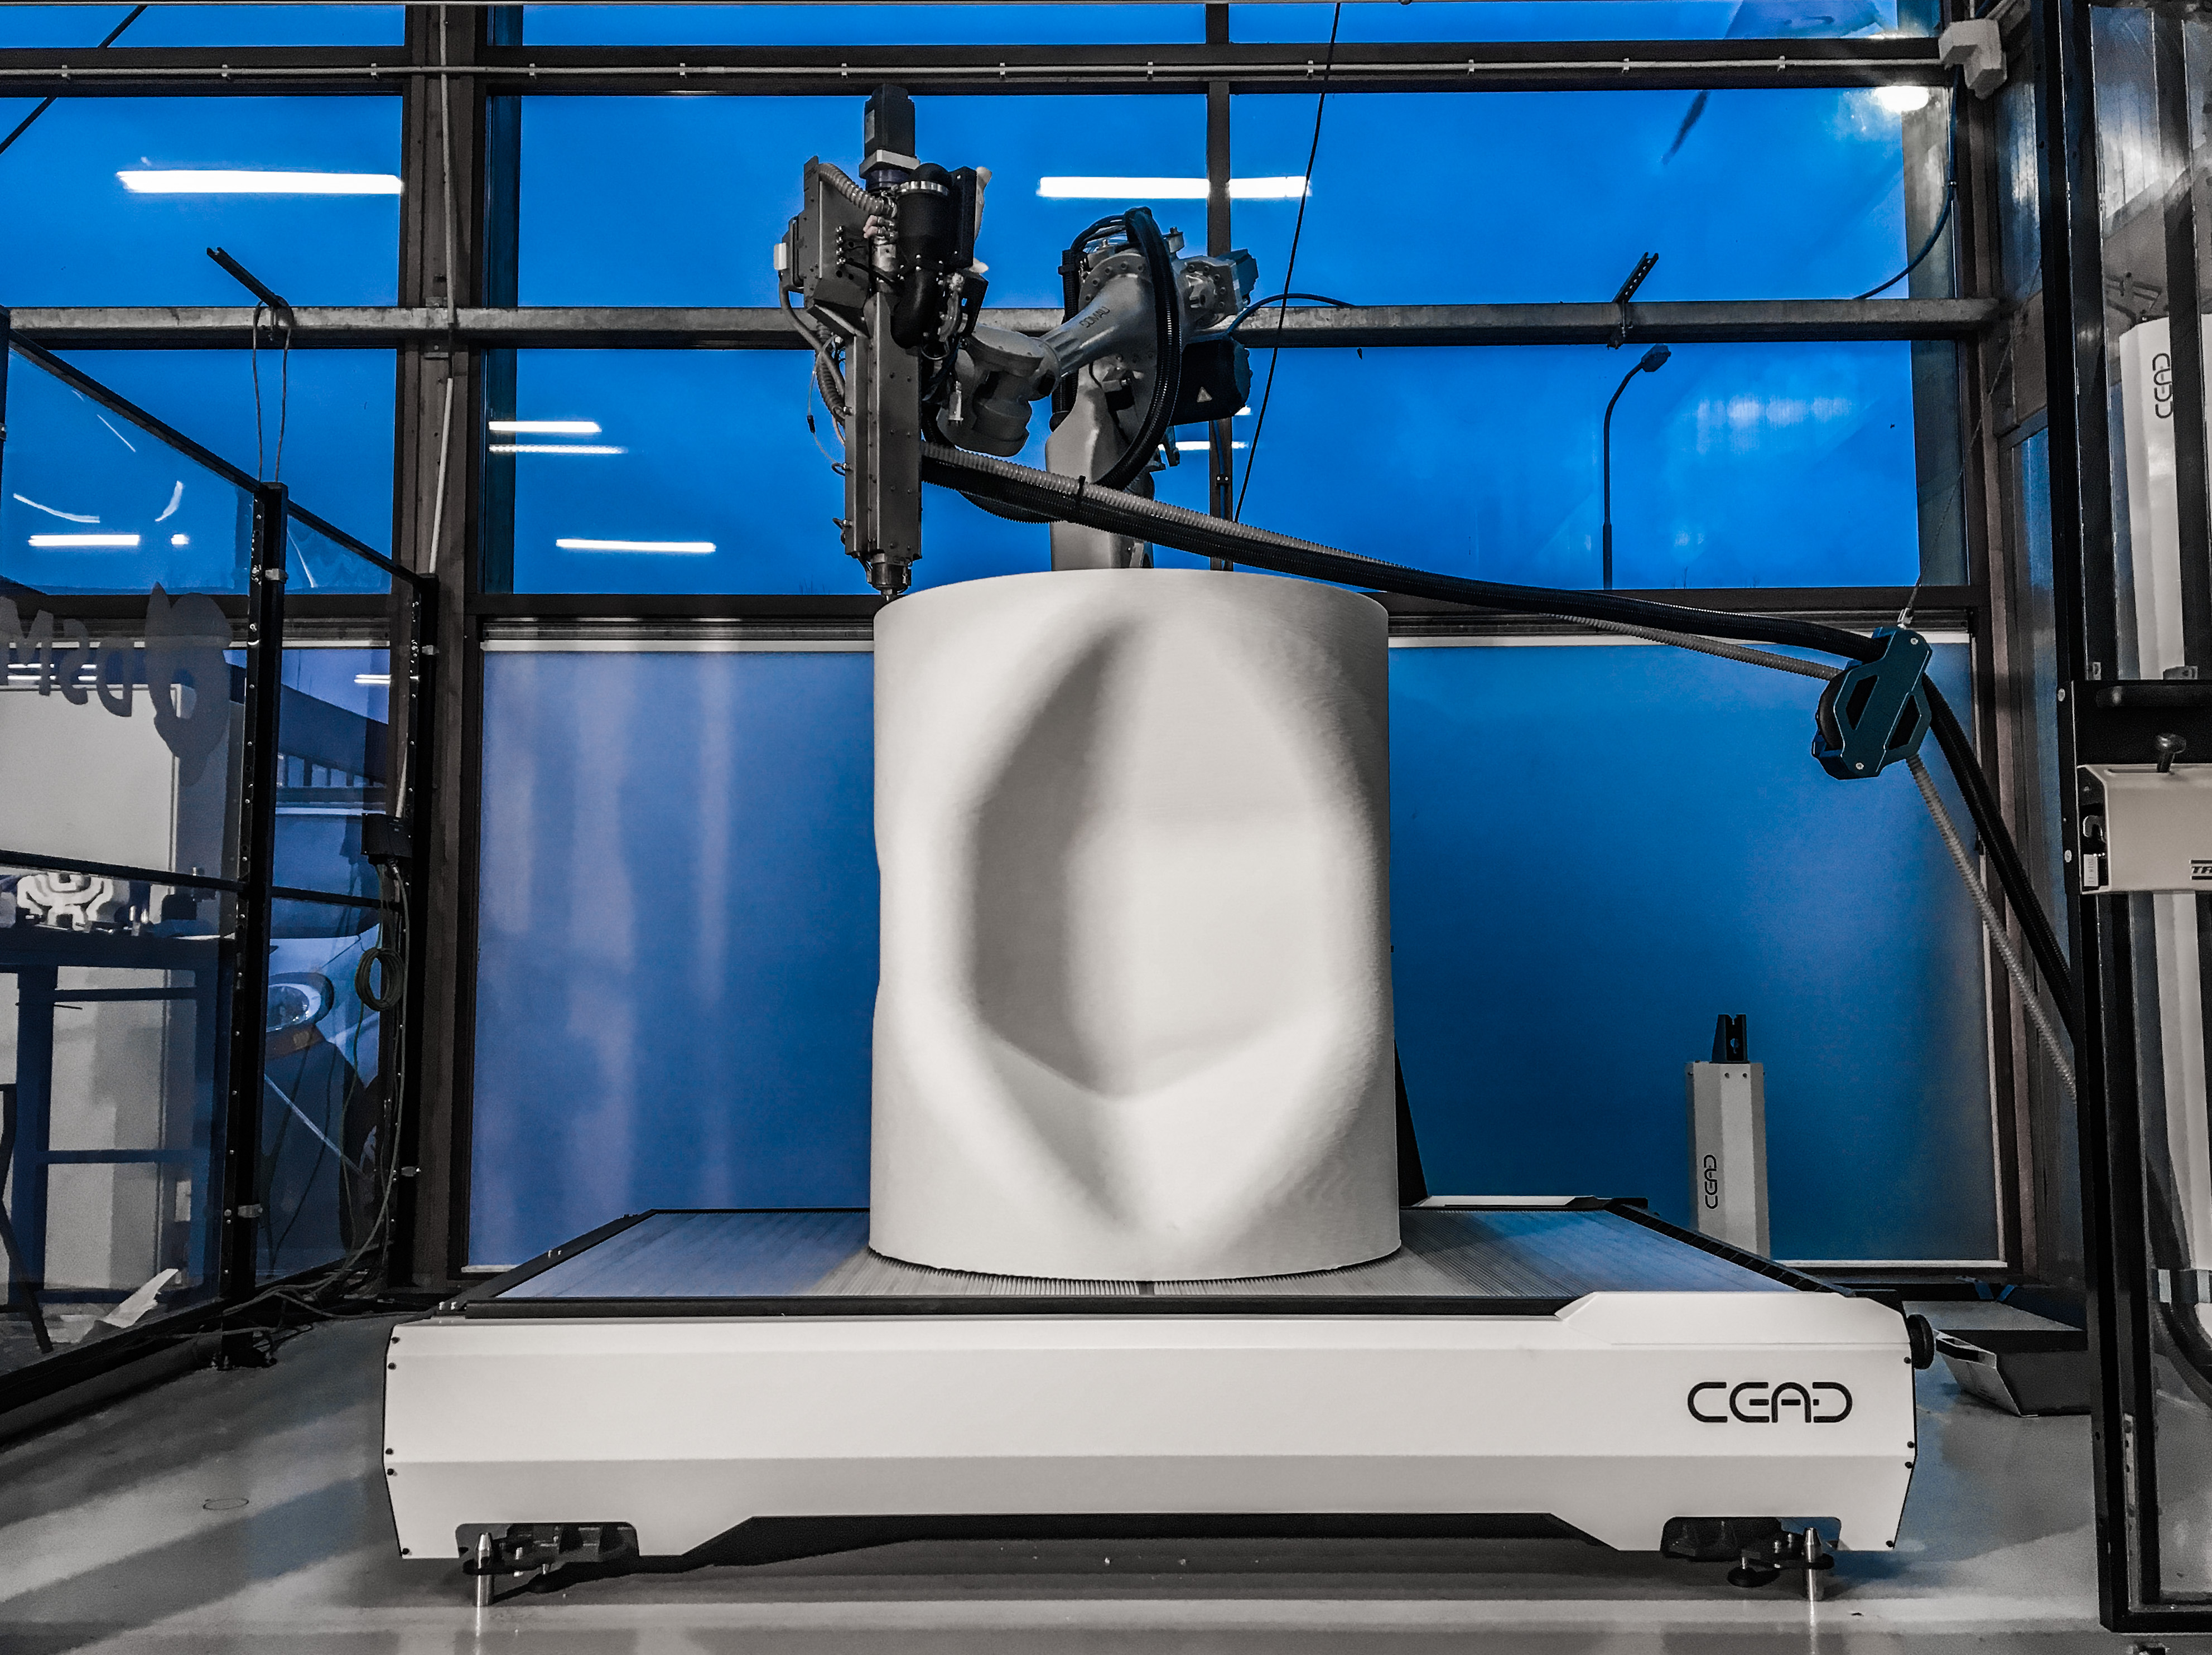 3D Printing function